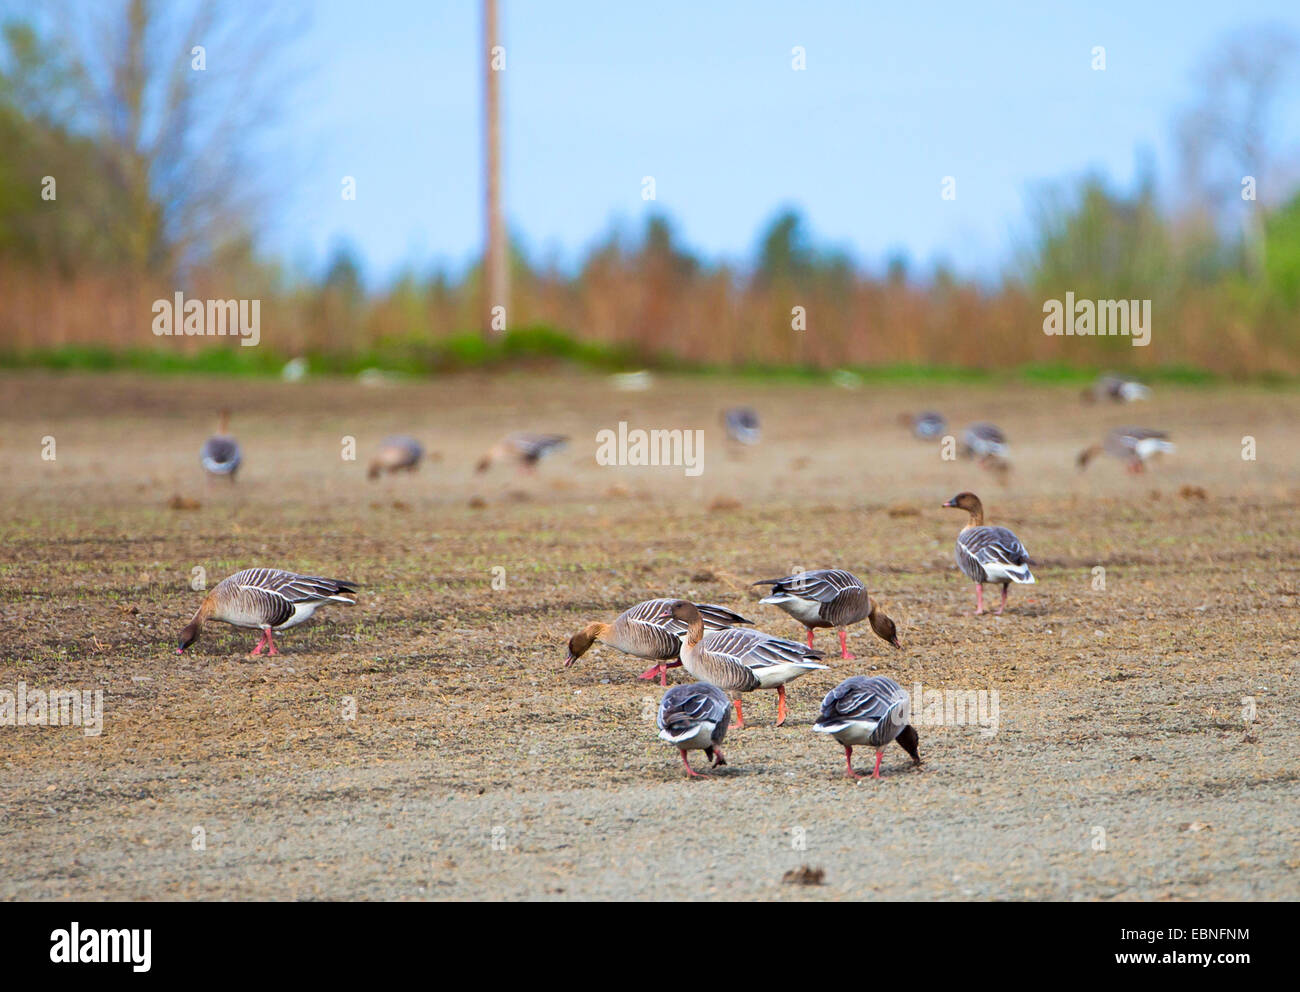 pink-footed goose (Anser brachyrhynchus), pink-footed goose on the field, Norway, Nord-Trondelag, Trones - Stock Image